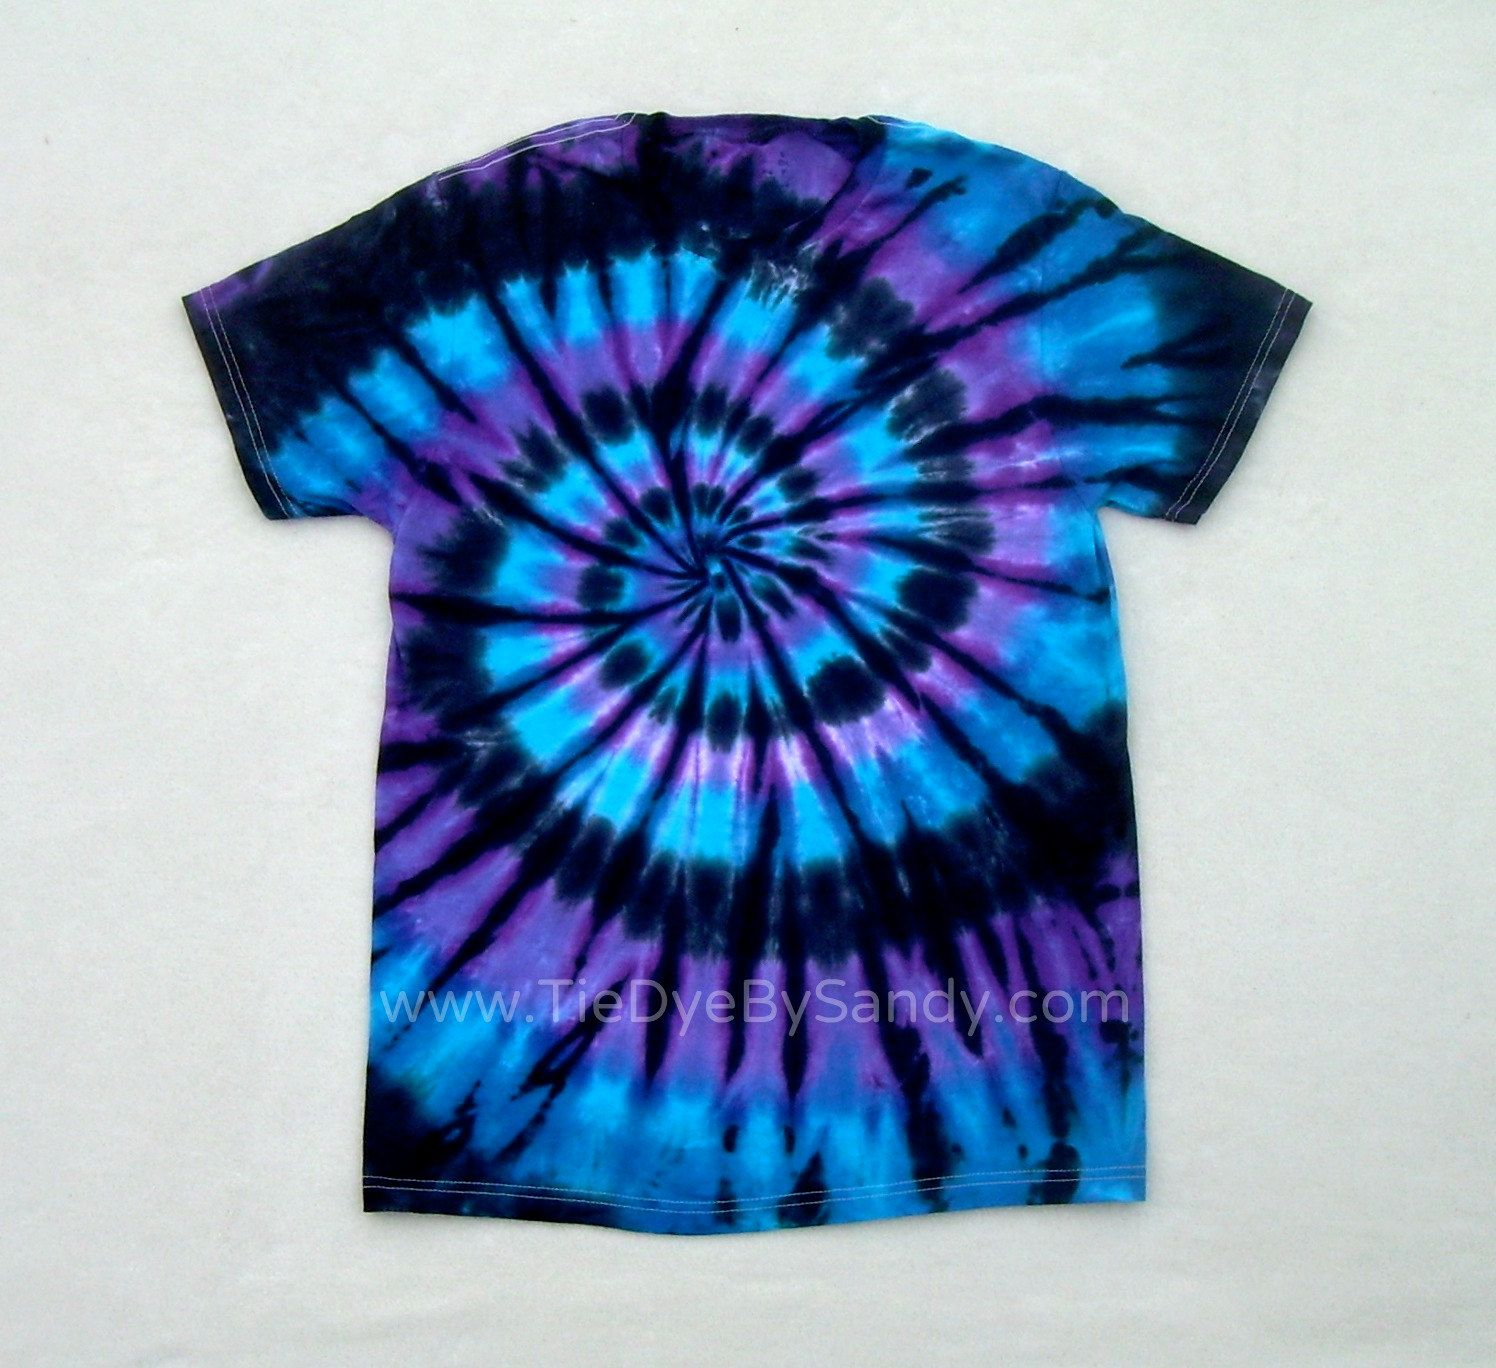 tie dye shirt moon shadow spiral blue purple black moon shadow tie dyed shirts and dye shirt. Black Bedroom Furniture Sets. Home Design Ideas